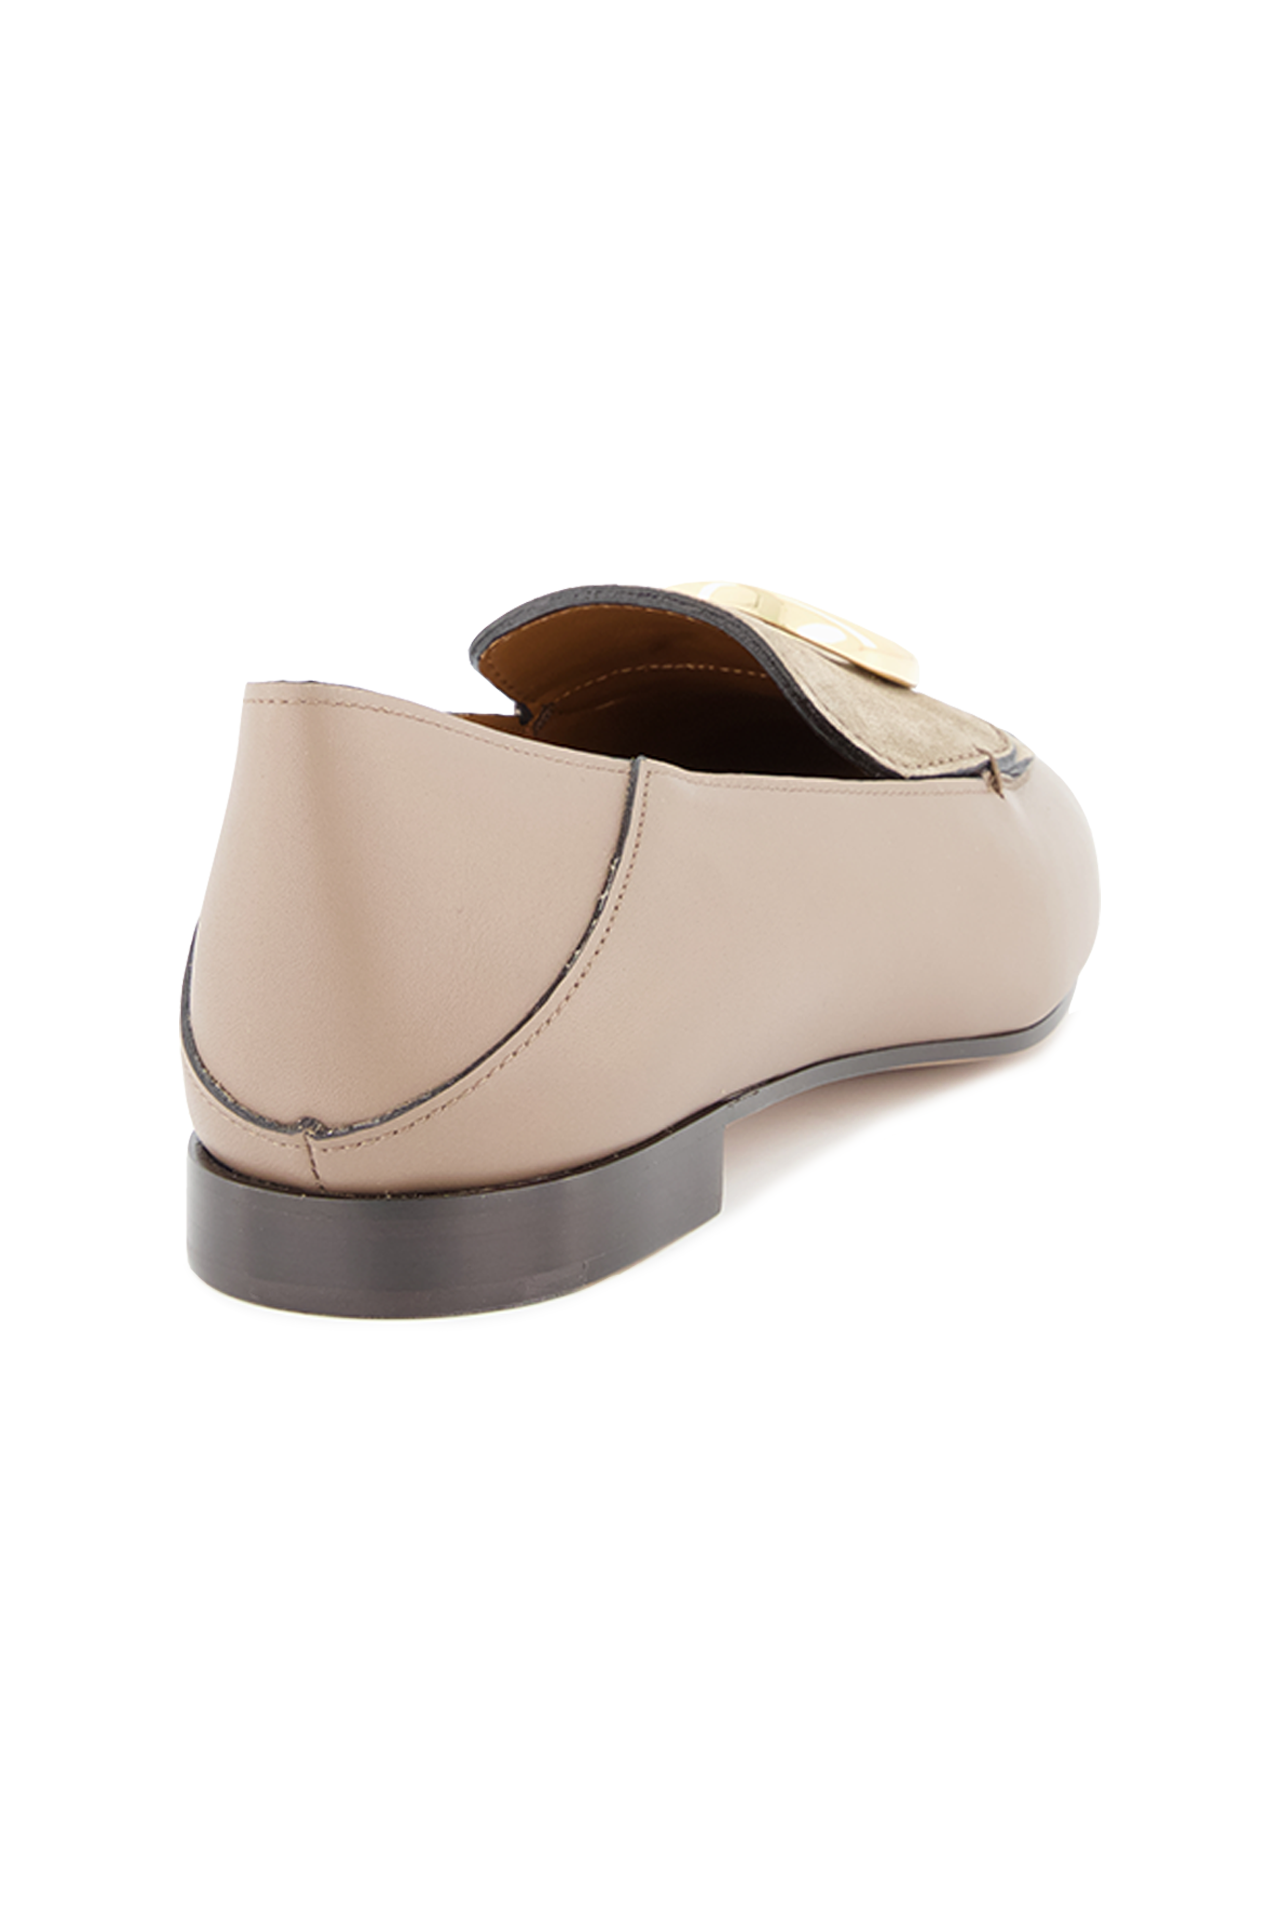 Back angled view image of Chloé C Loafer Motty Grey